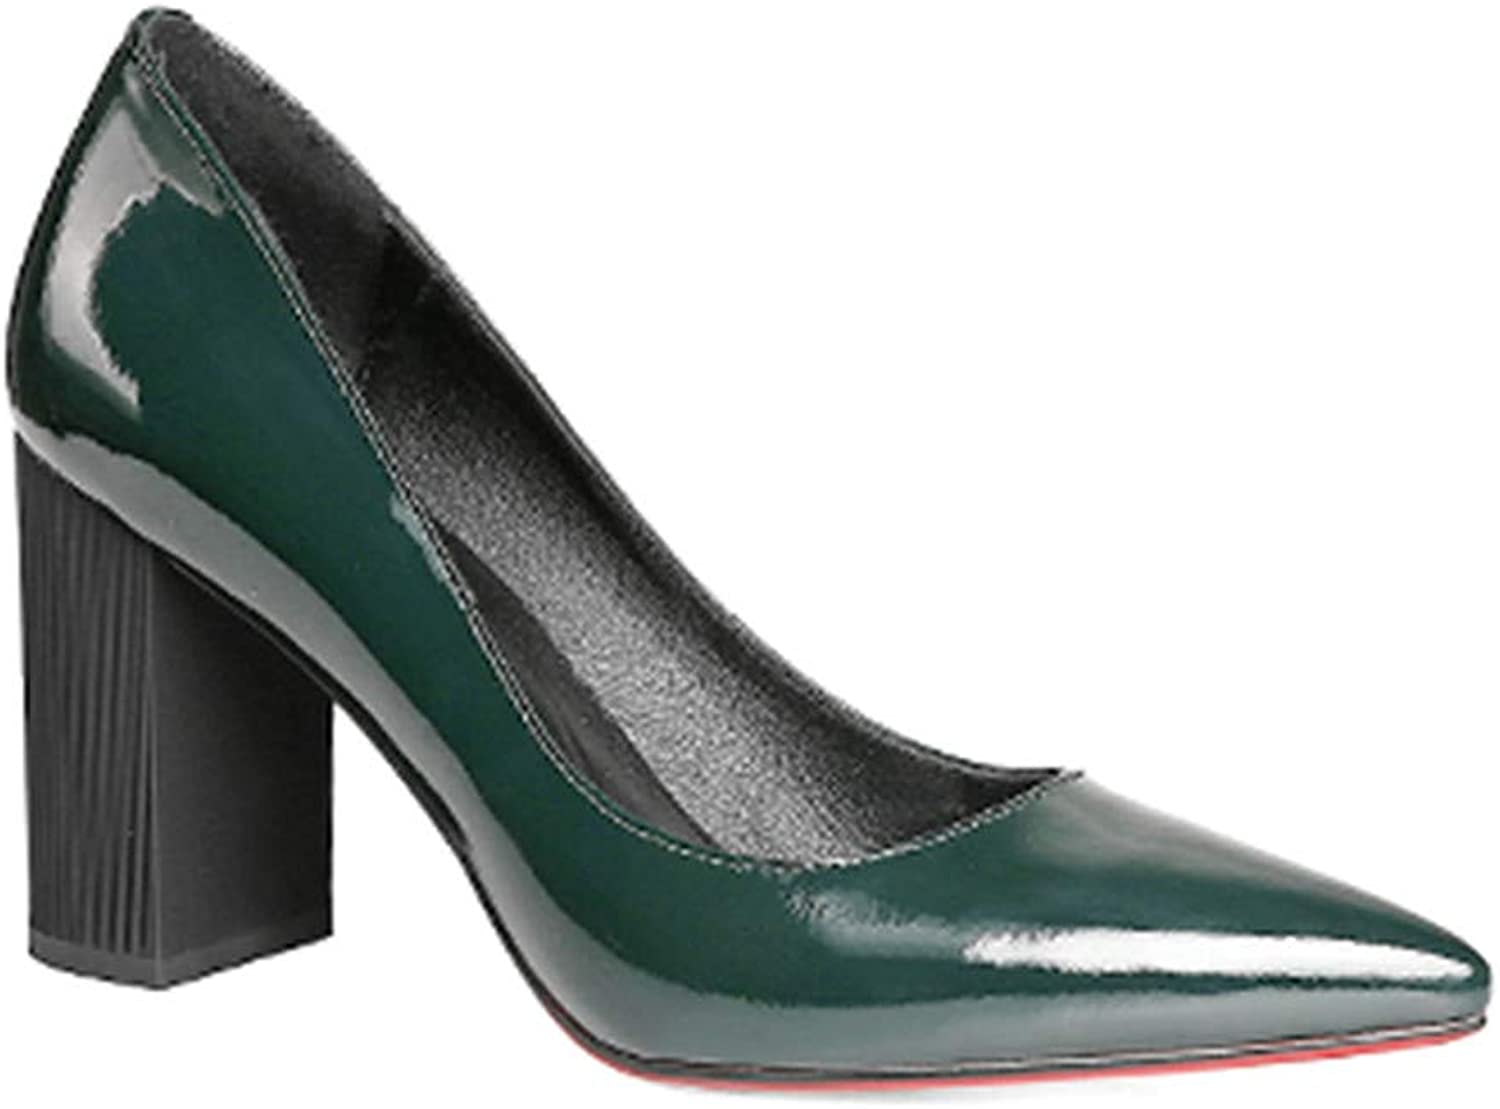 BestLifes Square Heels Pumps Dark Green Patent Leather Elegant Office Lady Pumps